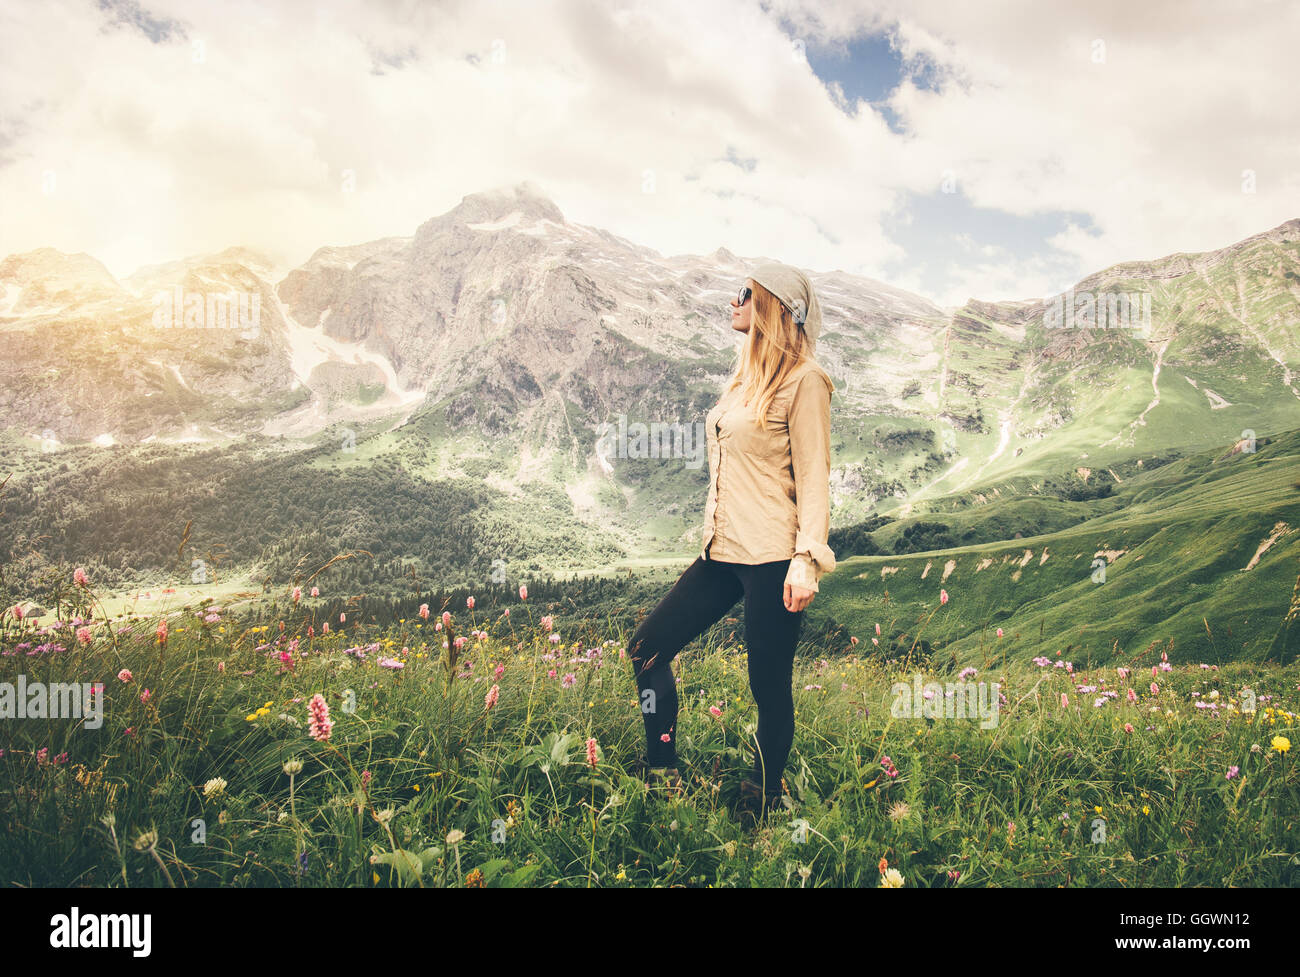 Young Woman walking Travel Lifestyle concept Summer vacations outdoor rocky mountains on background - Stock Image